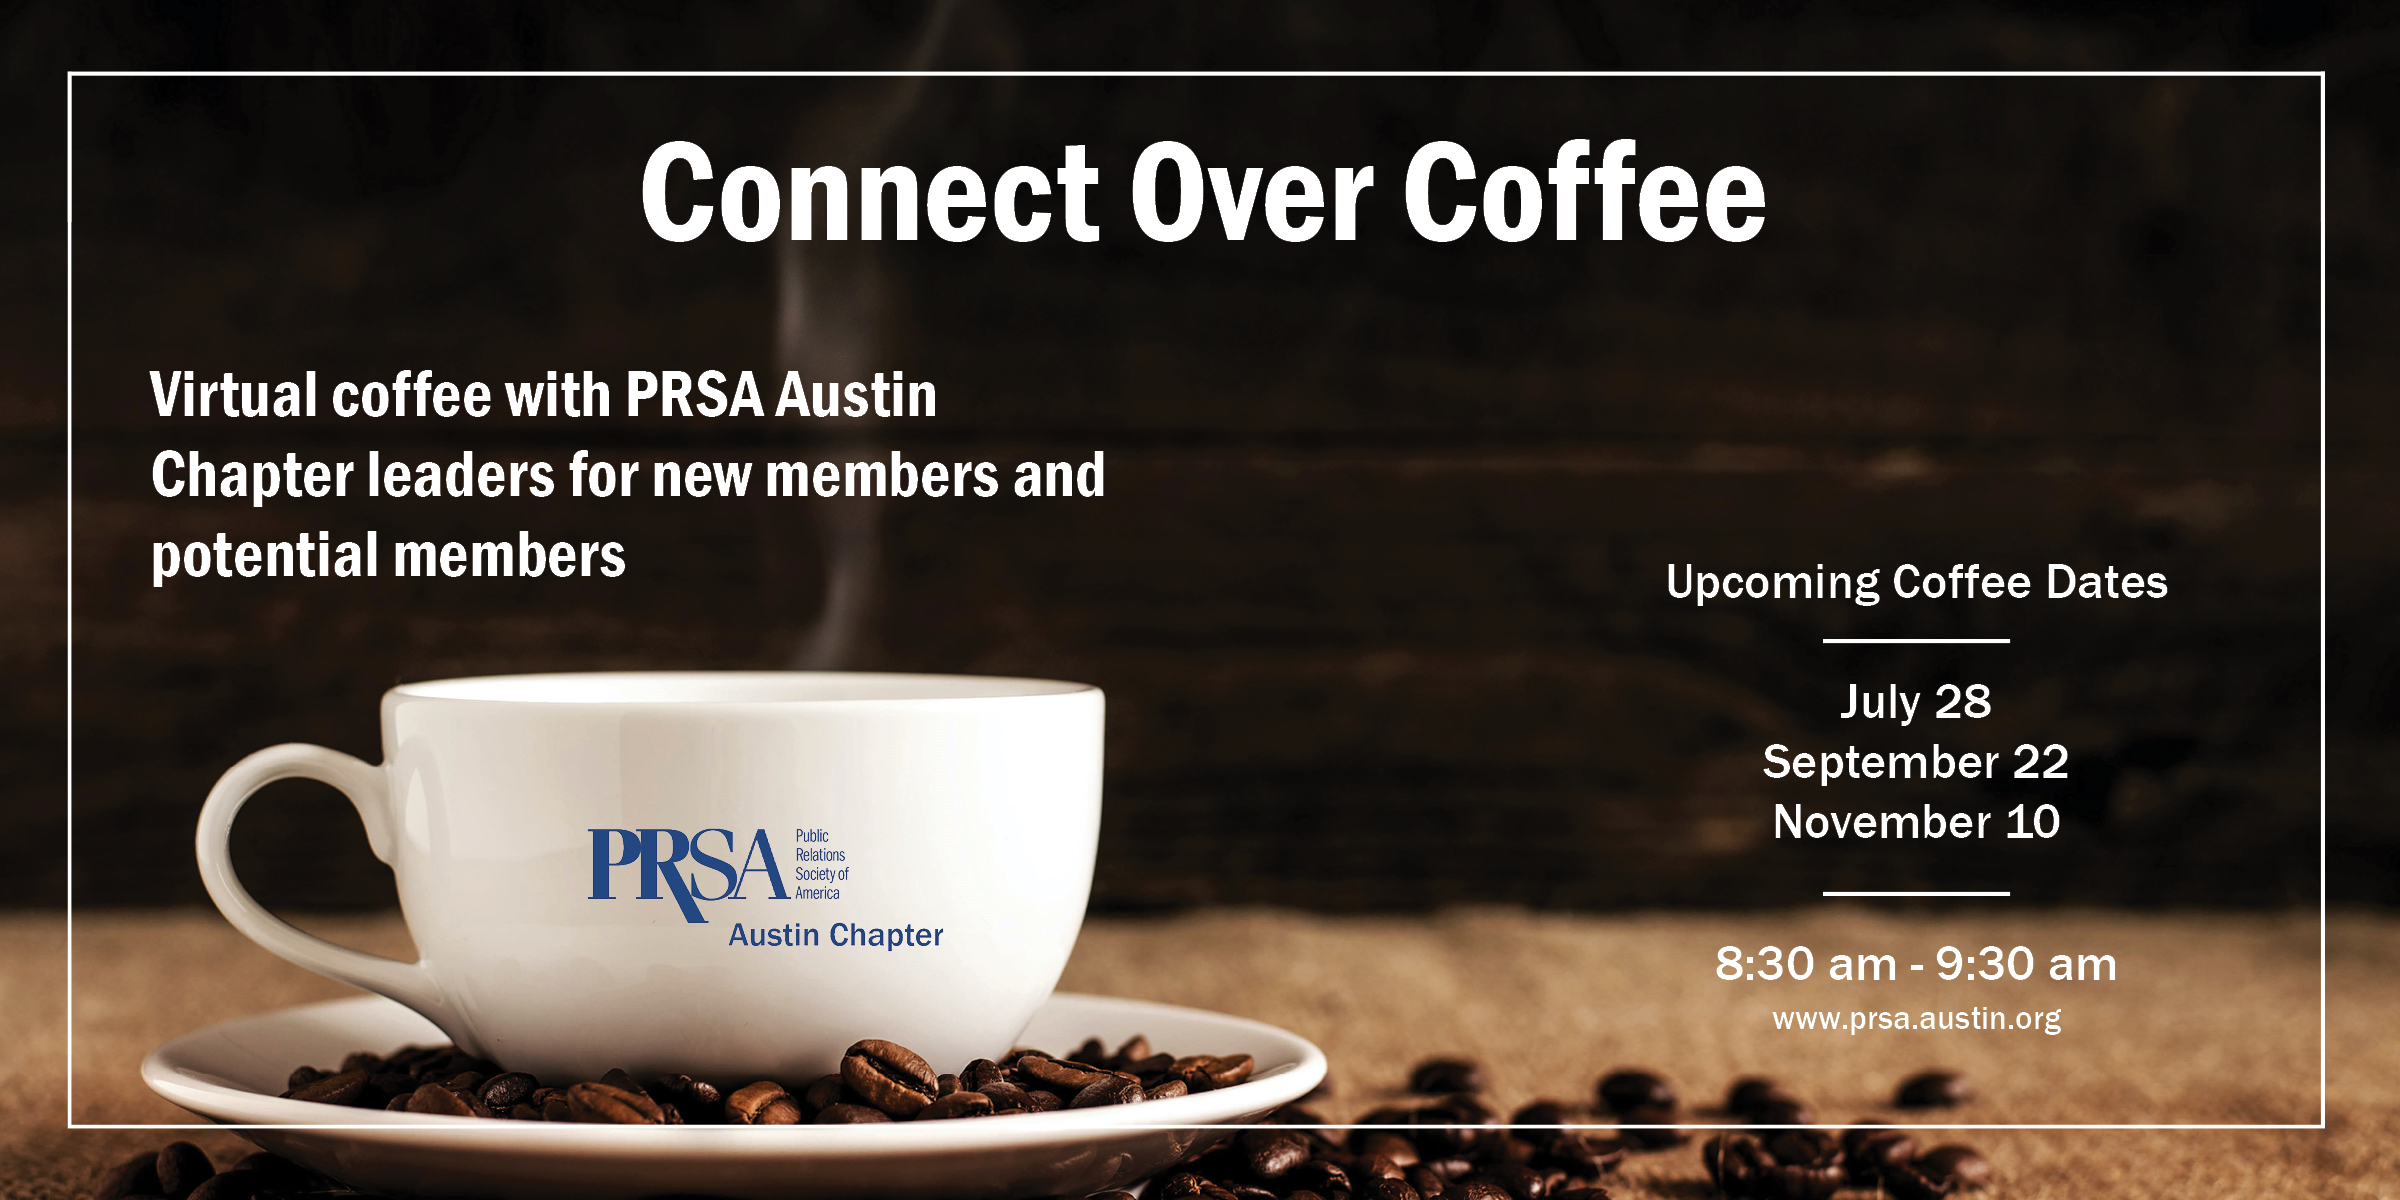 Connect Over Coffee Promotional Graphic